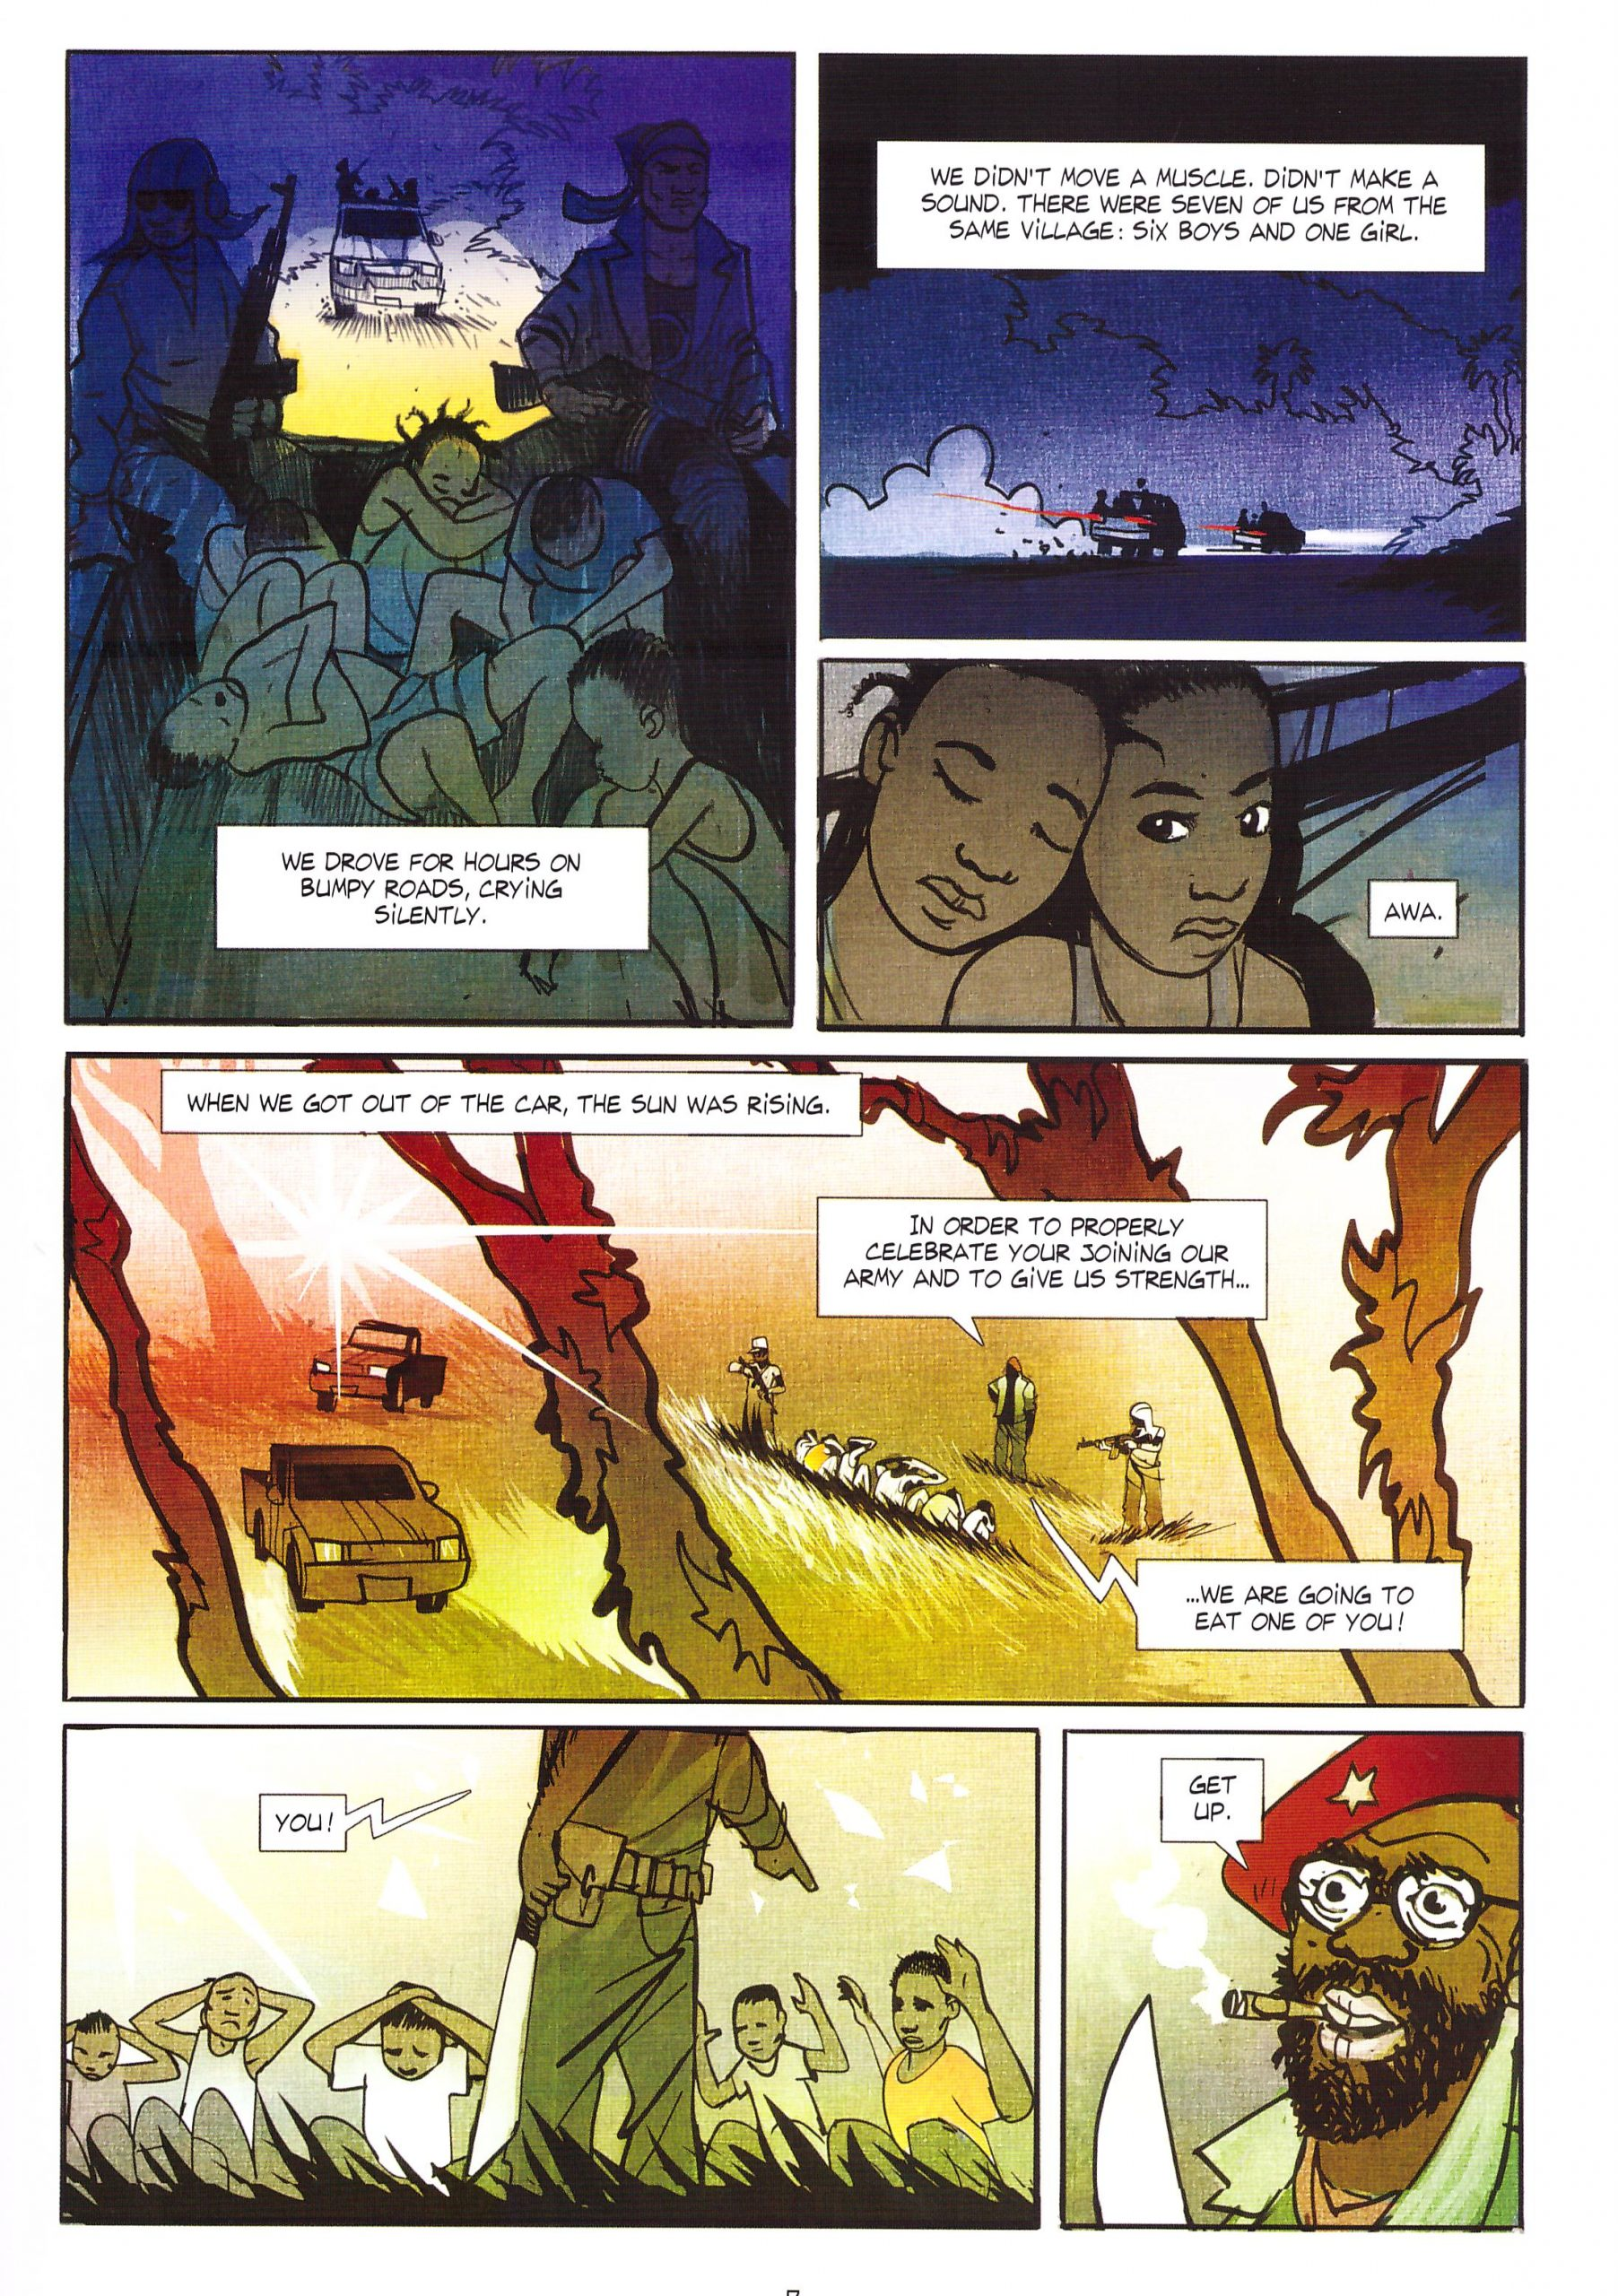 Tamba Child Soldier review